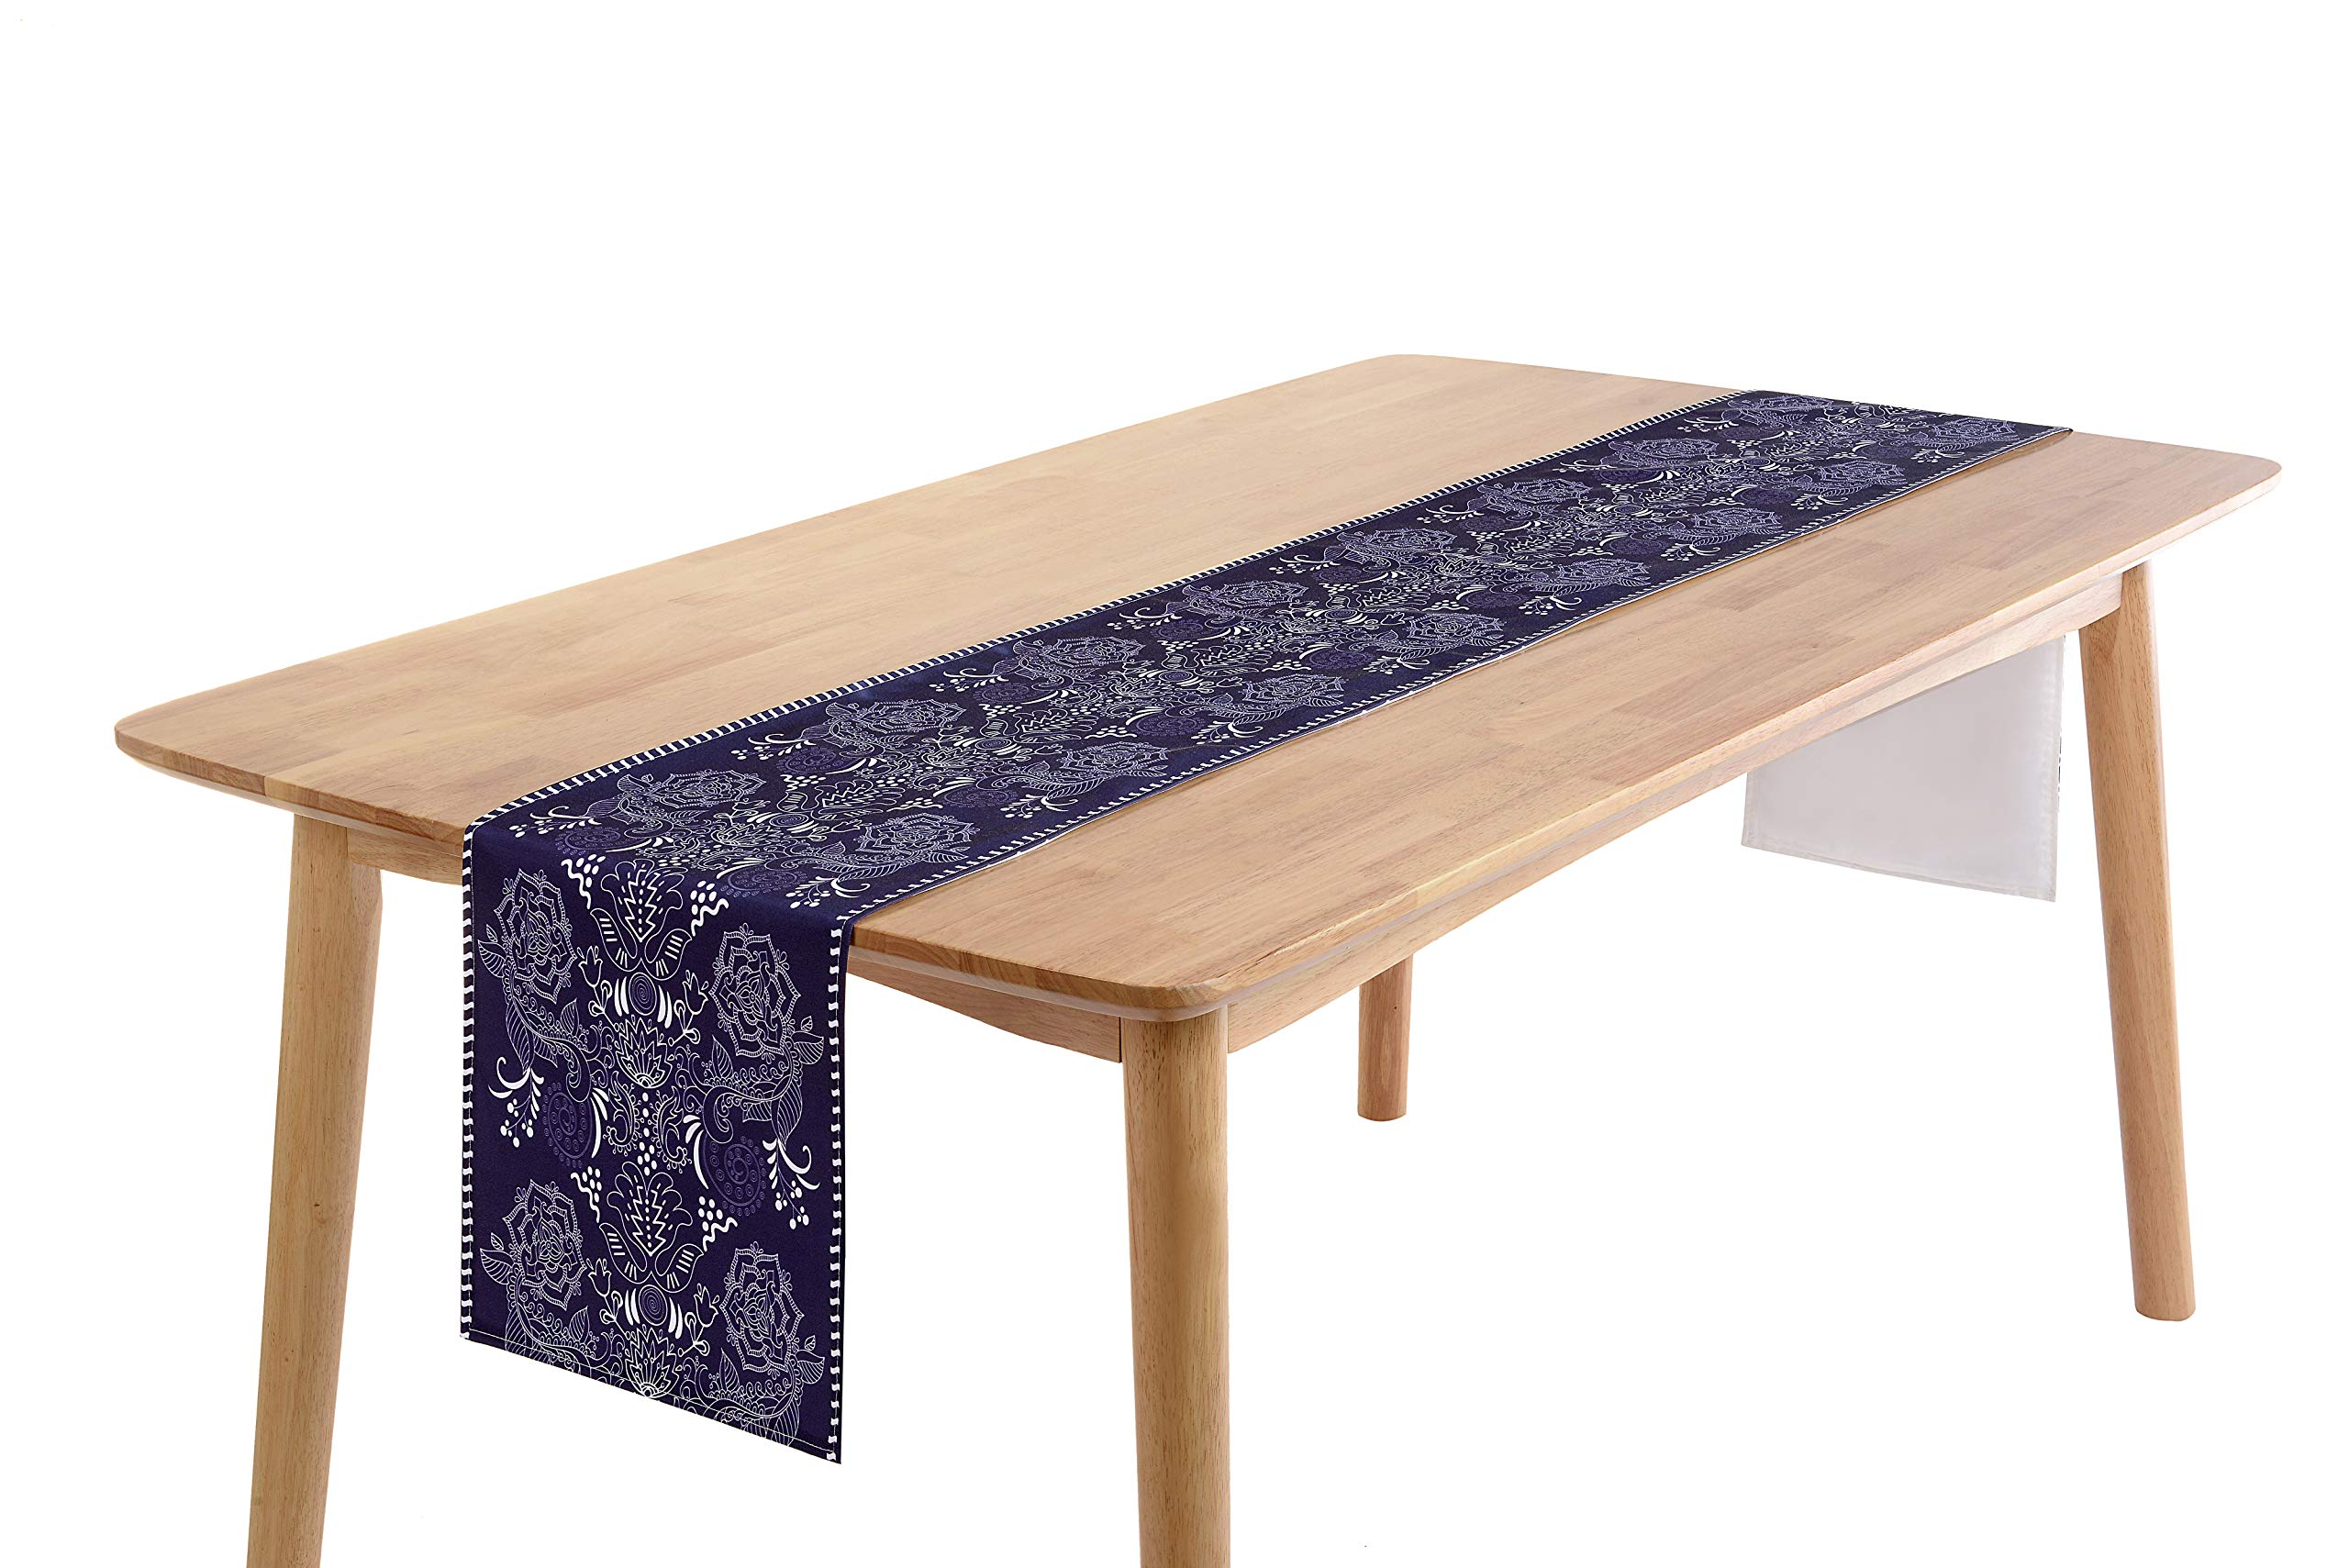 PuTianHome-Decorative Table Runner for Dinning Room, Foyer Table, Dresser Scarf, Parties and Everyday Use-Easy Dry-Indigo Porcelain